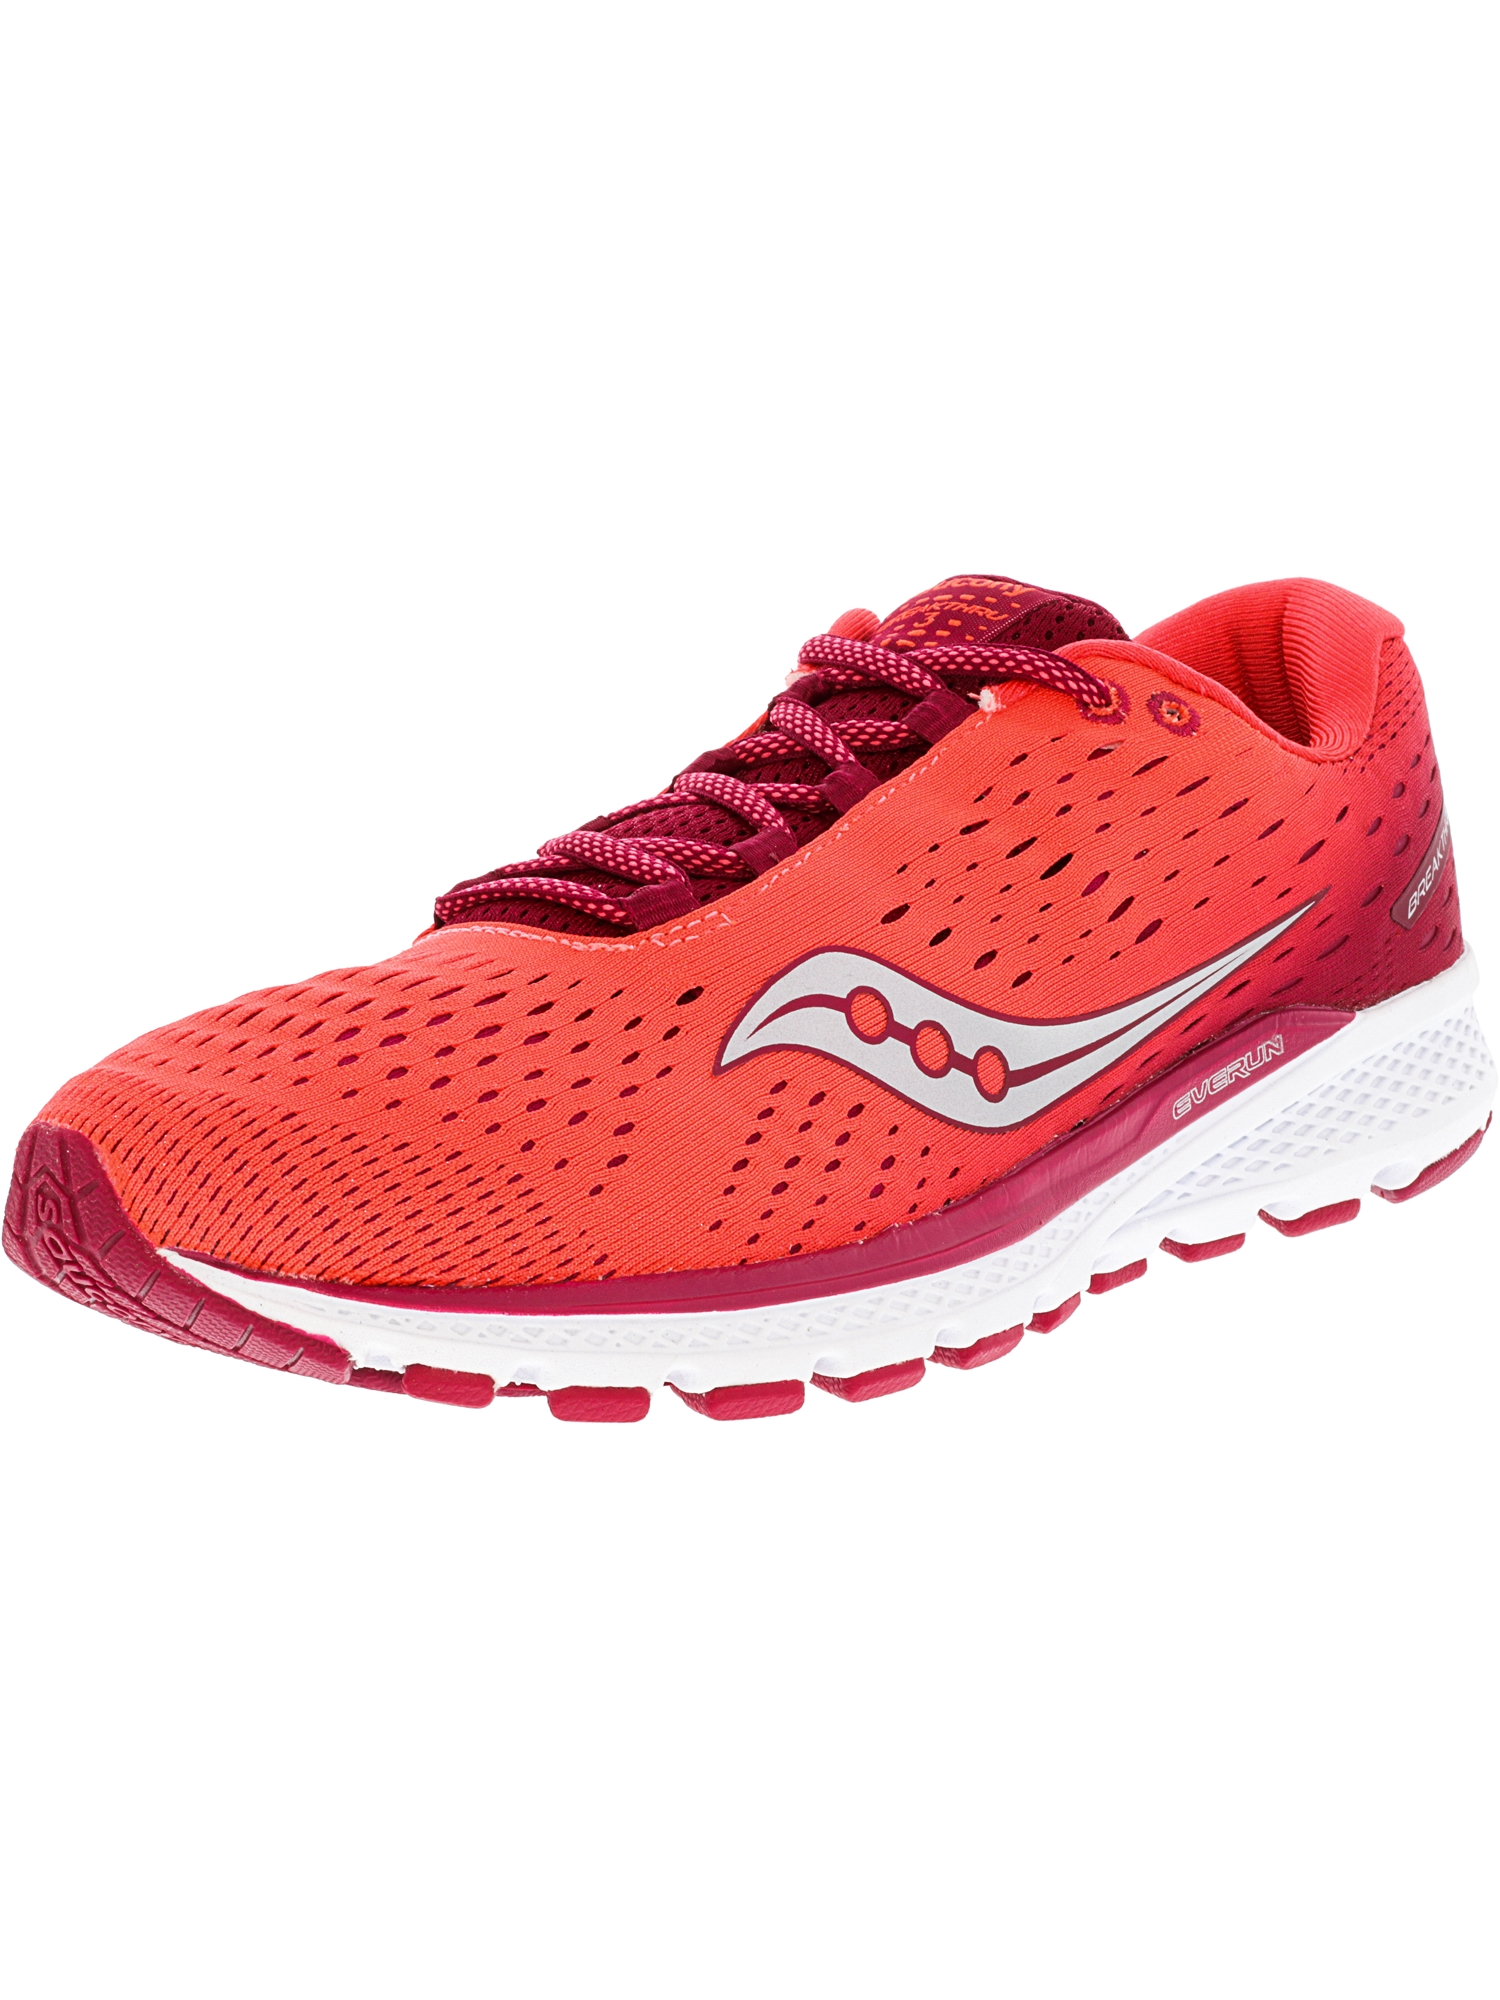 Women's Breakthru 3 Berry / Coral Ankle-High Running Shoe - 6M